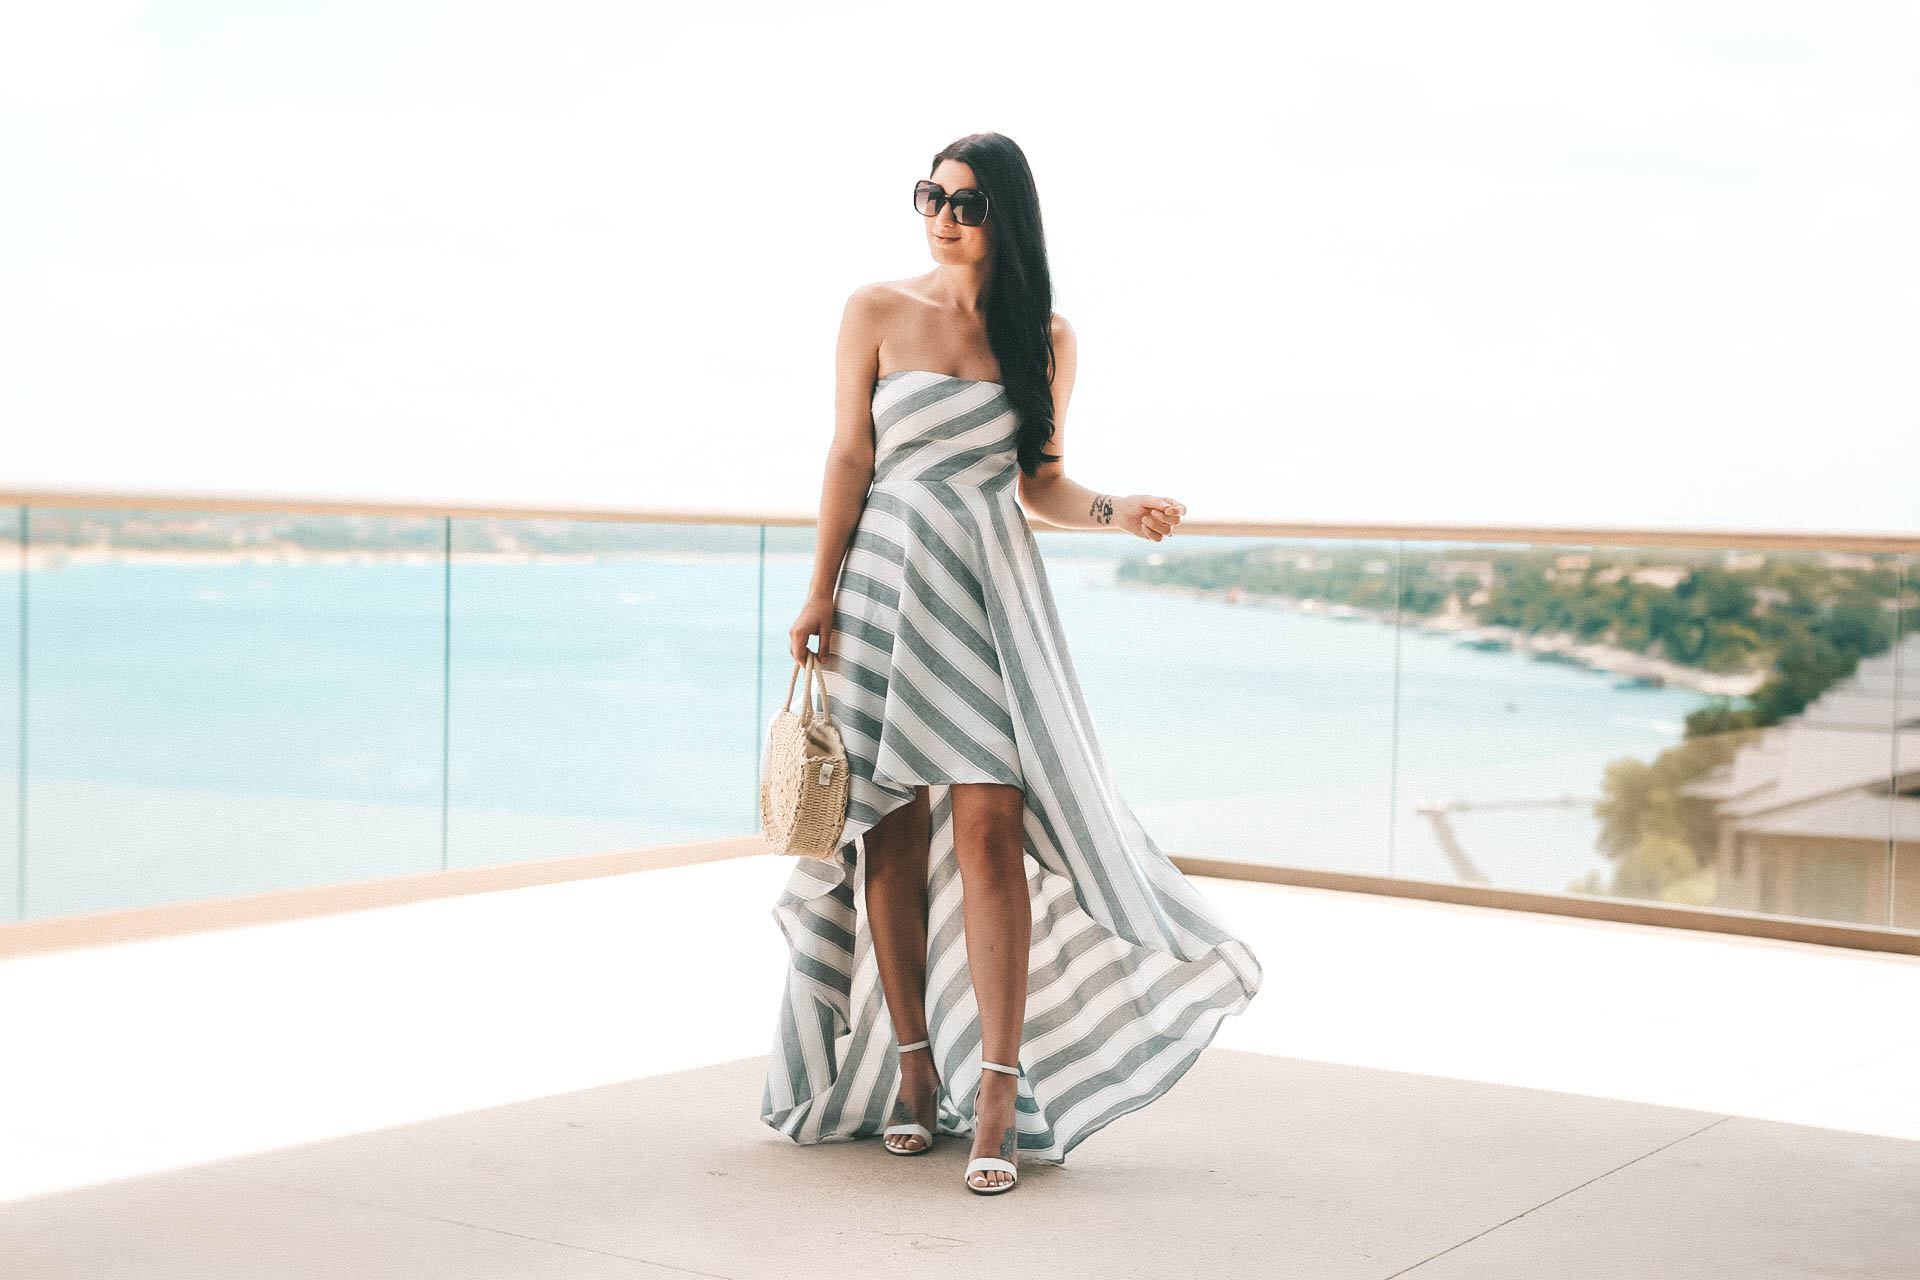 DTKAustin shares an affordable lace up, maxi dress perfect for summer. Dress is AKIRA, bag is Clare V, shoes Steve Madden. - {The Lace-Up Dress of Your Dreams} featured by popular Austin fashion blogger, Dressed to Kill